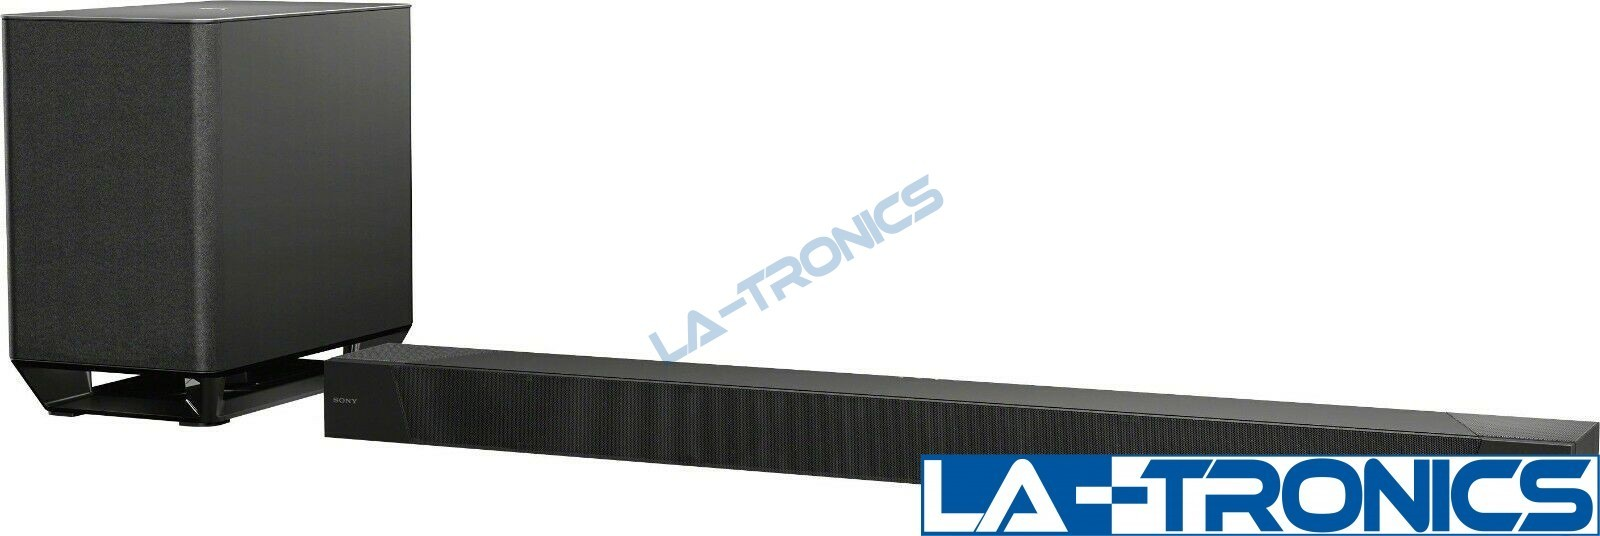 Sony HT-ST5000 7.1.2-Channel Hi-Res Sound Bar With Wireless Subwoofer And Dolby